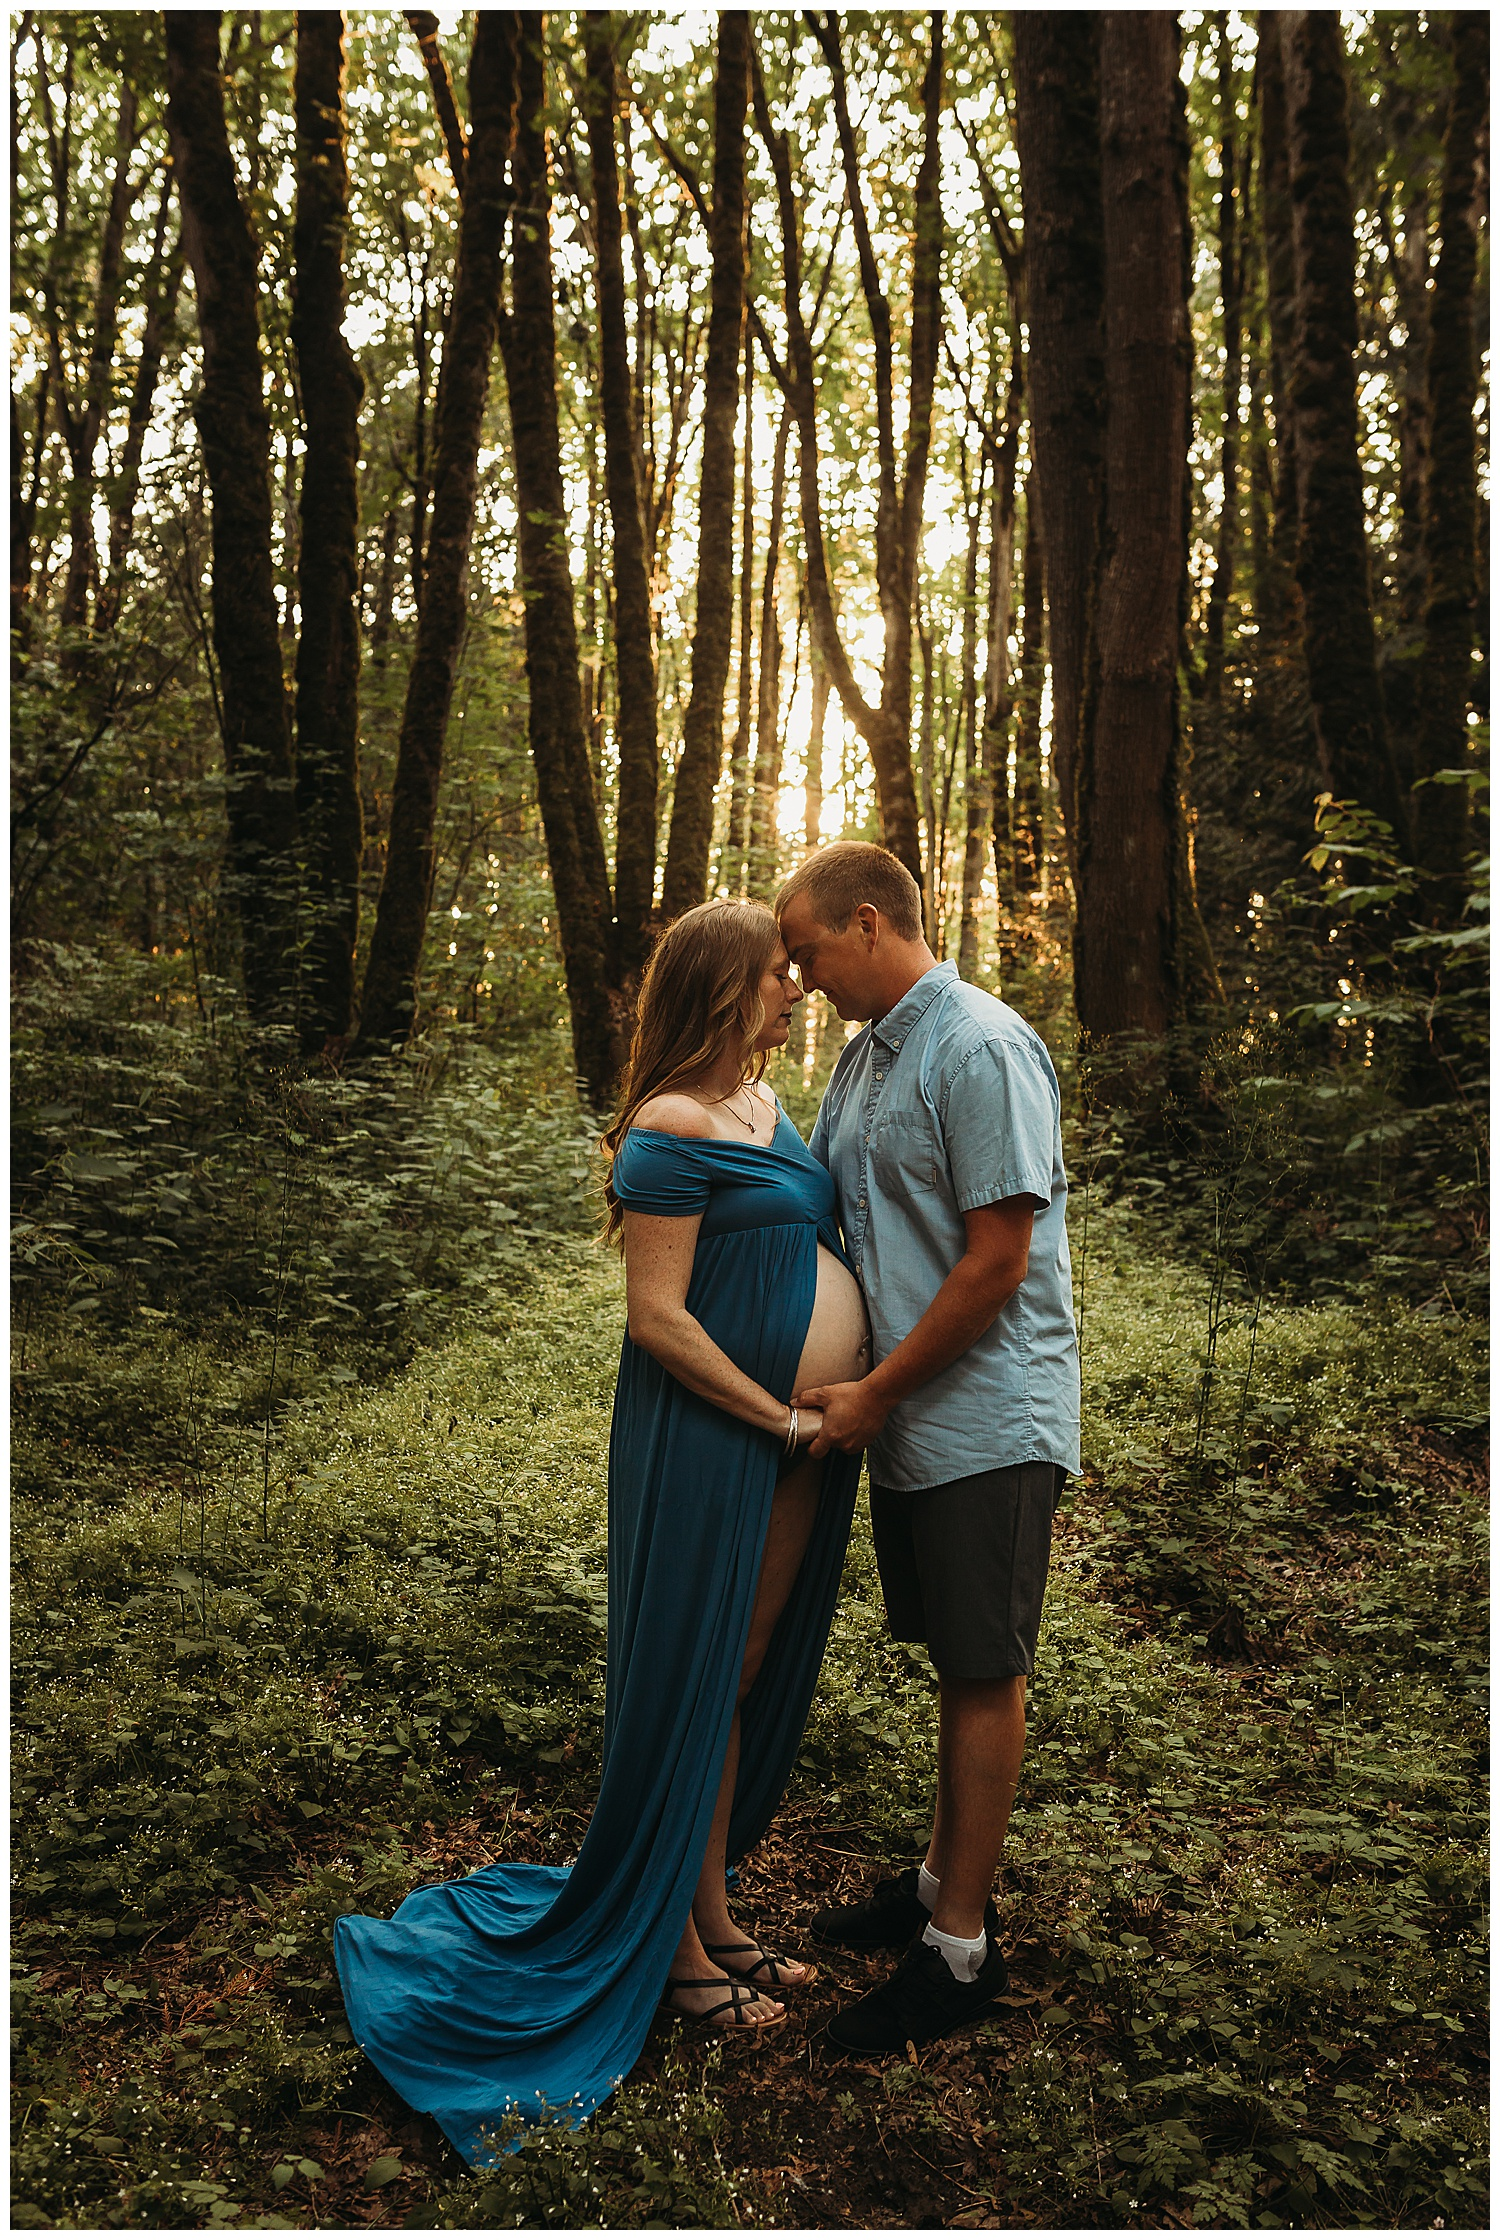 Chilliwack Maternity Anna Hurley Photography 22.jpg